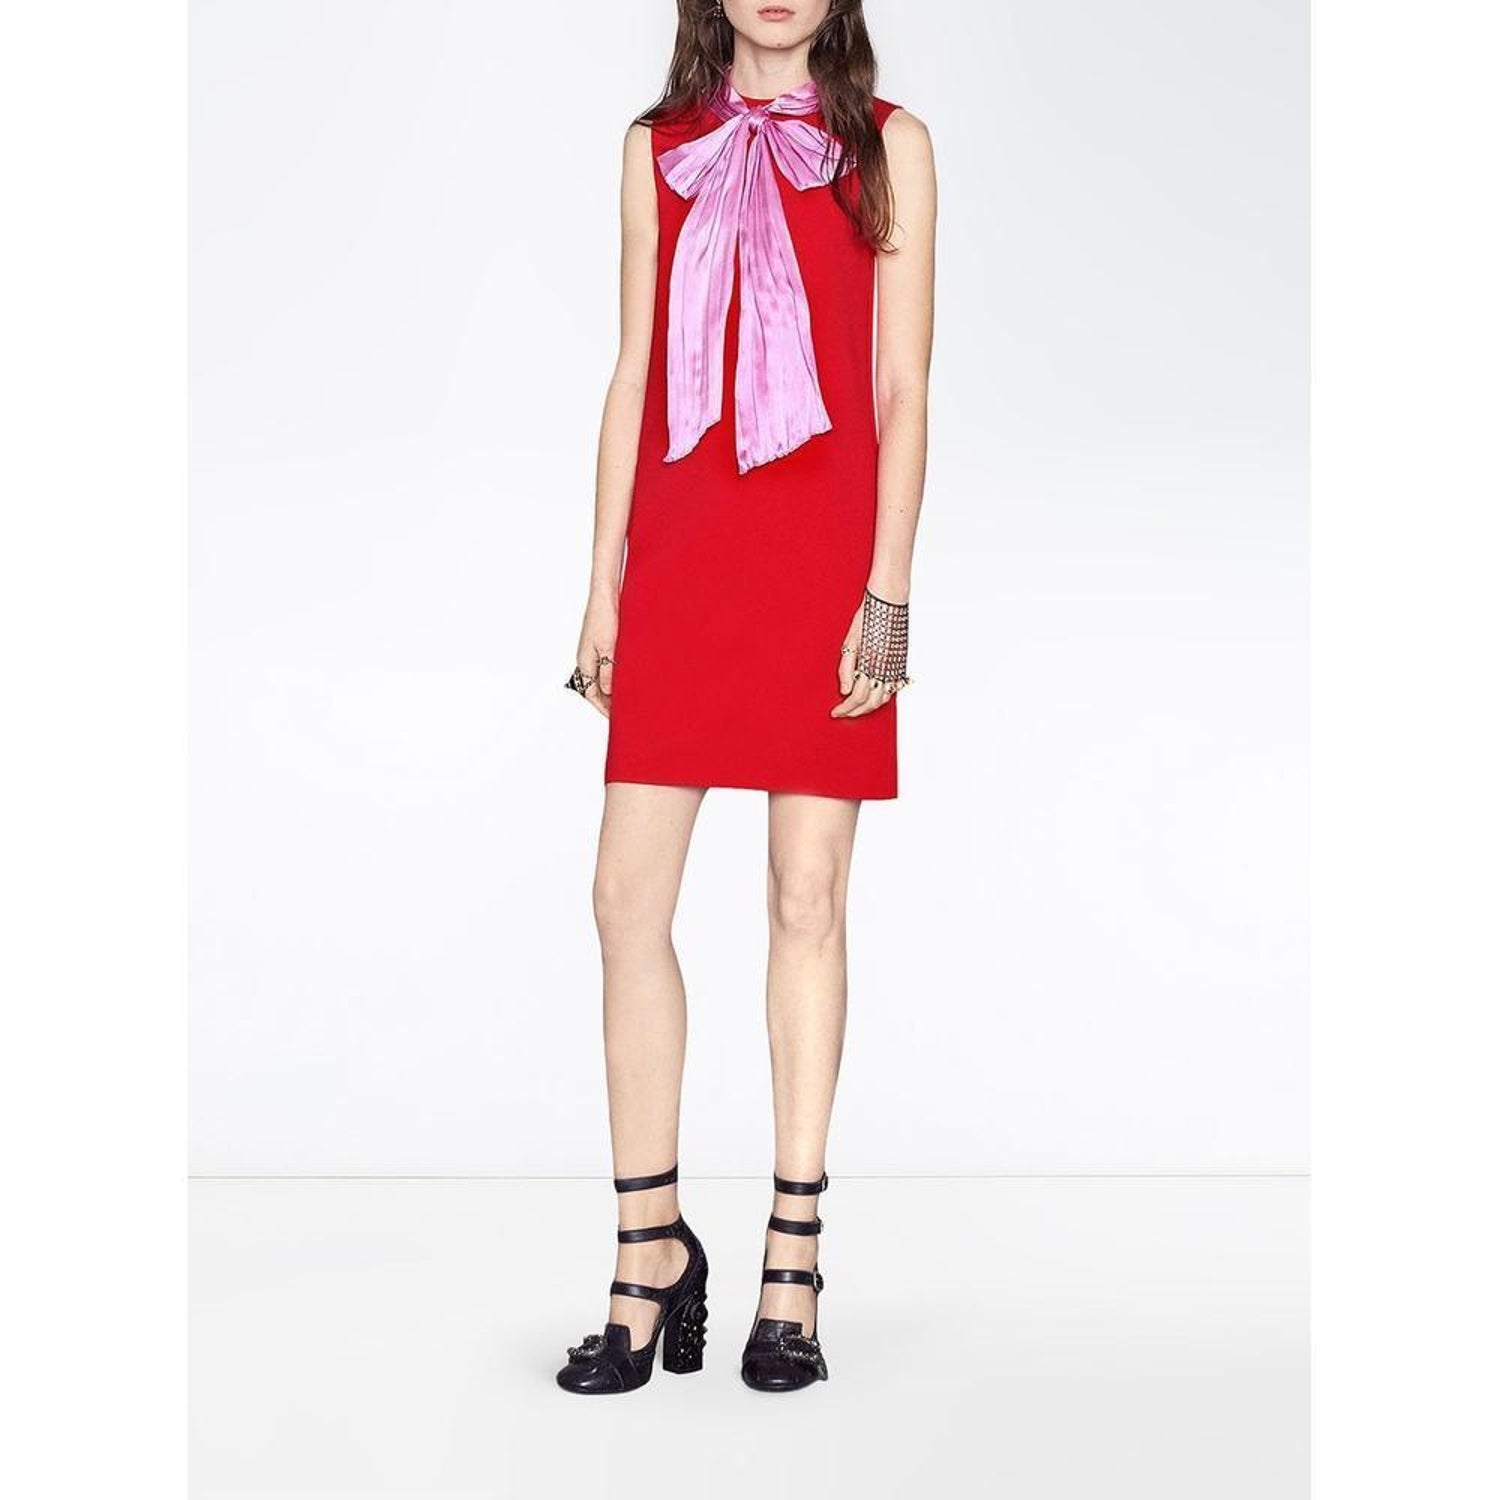 cfb2d53f1 GUCCI Stretch Red Dress with Bow - Large For Sale at 1stdibs